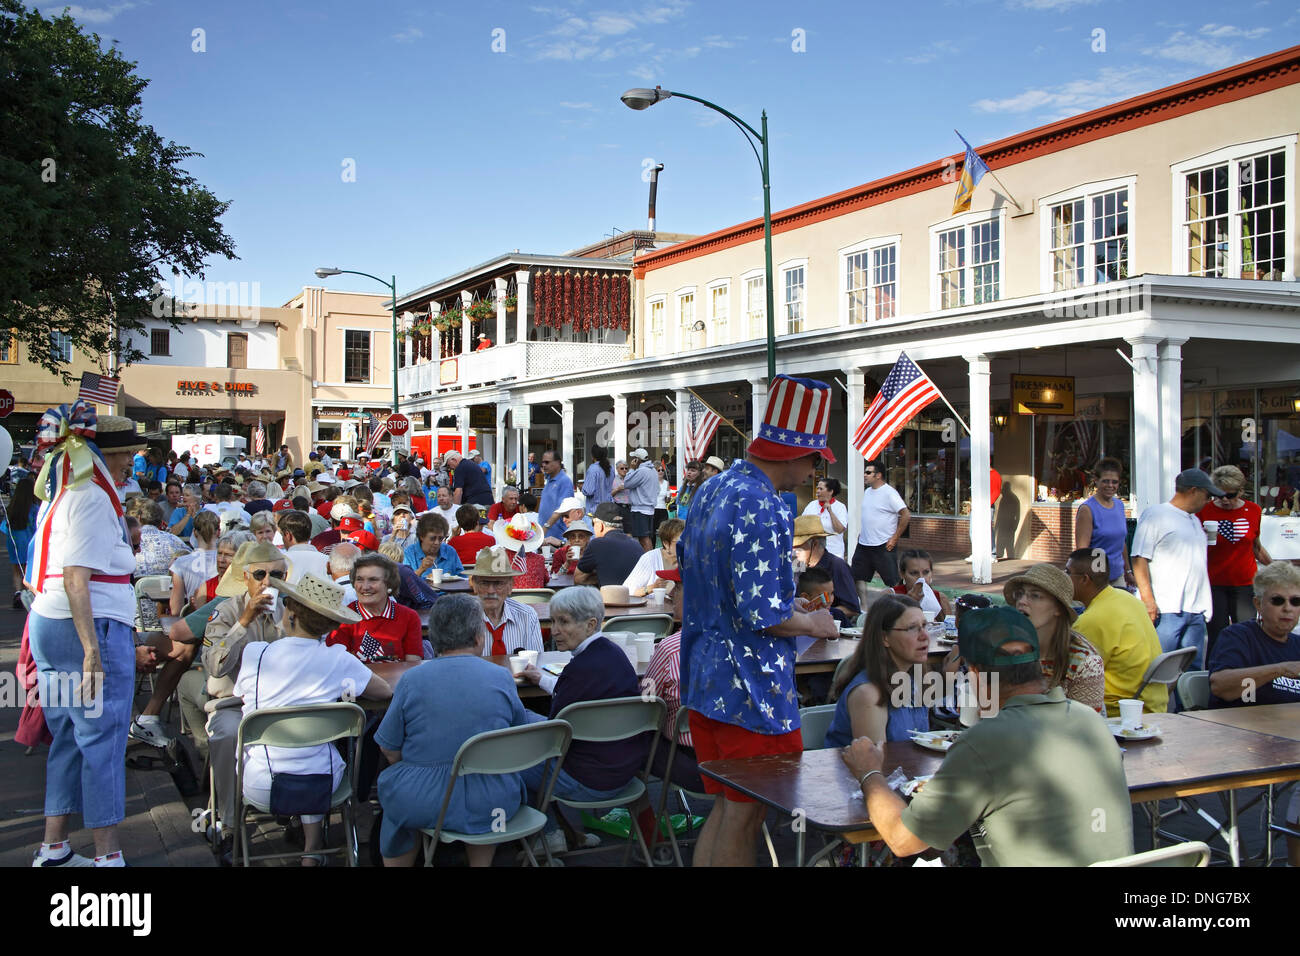 crowds on the plaza pancakes on the plaza 4th of july celebration